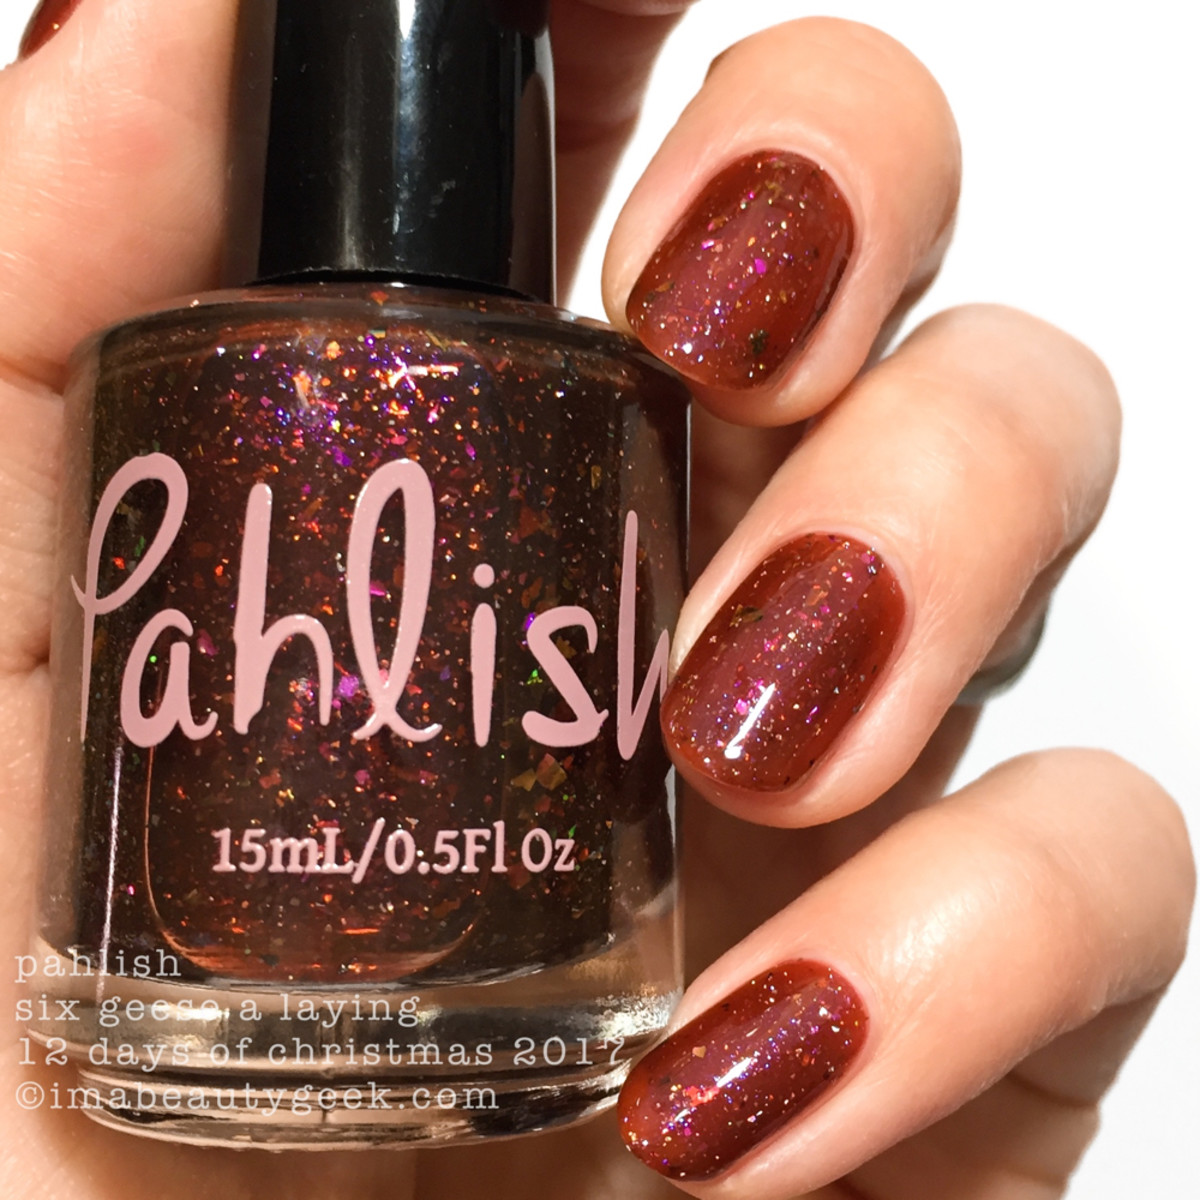 Pahlish Six Geese a Laying - Pahlish 12 Days of Christmas 2017 2